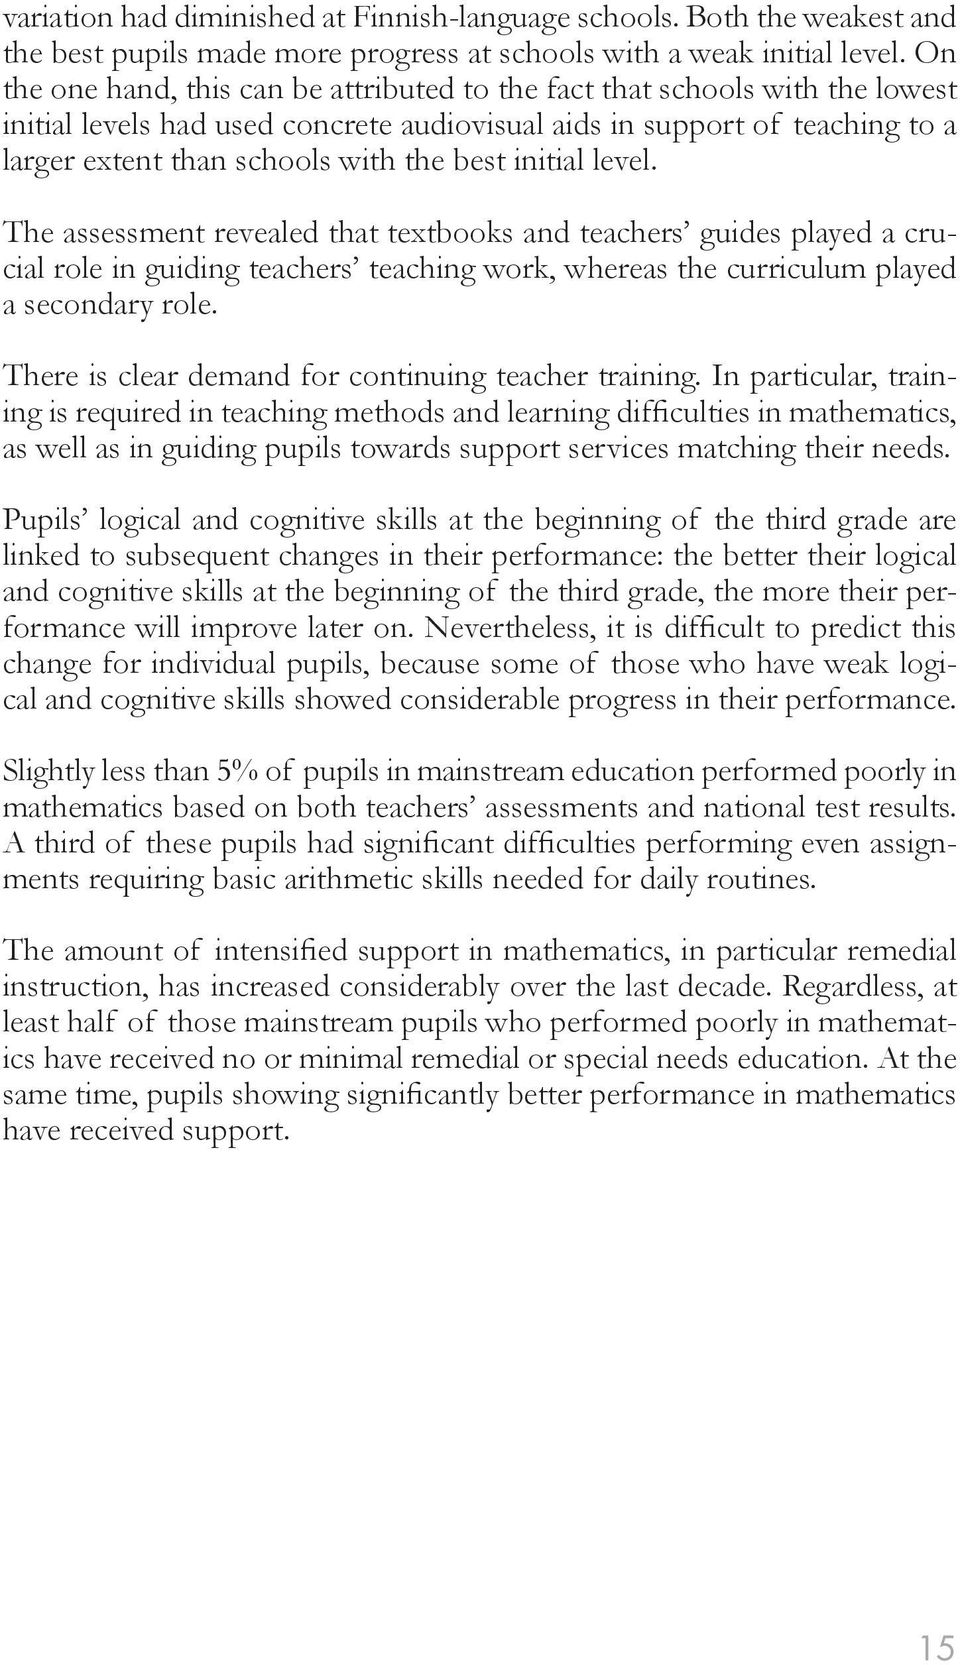 initial level. The assessment revealed that textbooks and teachers guides played a crucial role in guiding teachers teaching work, whereas the curriculum played a secondary role.